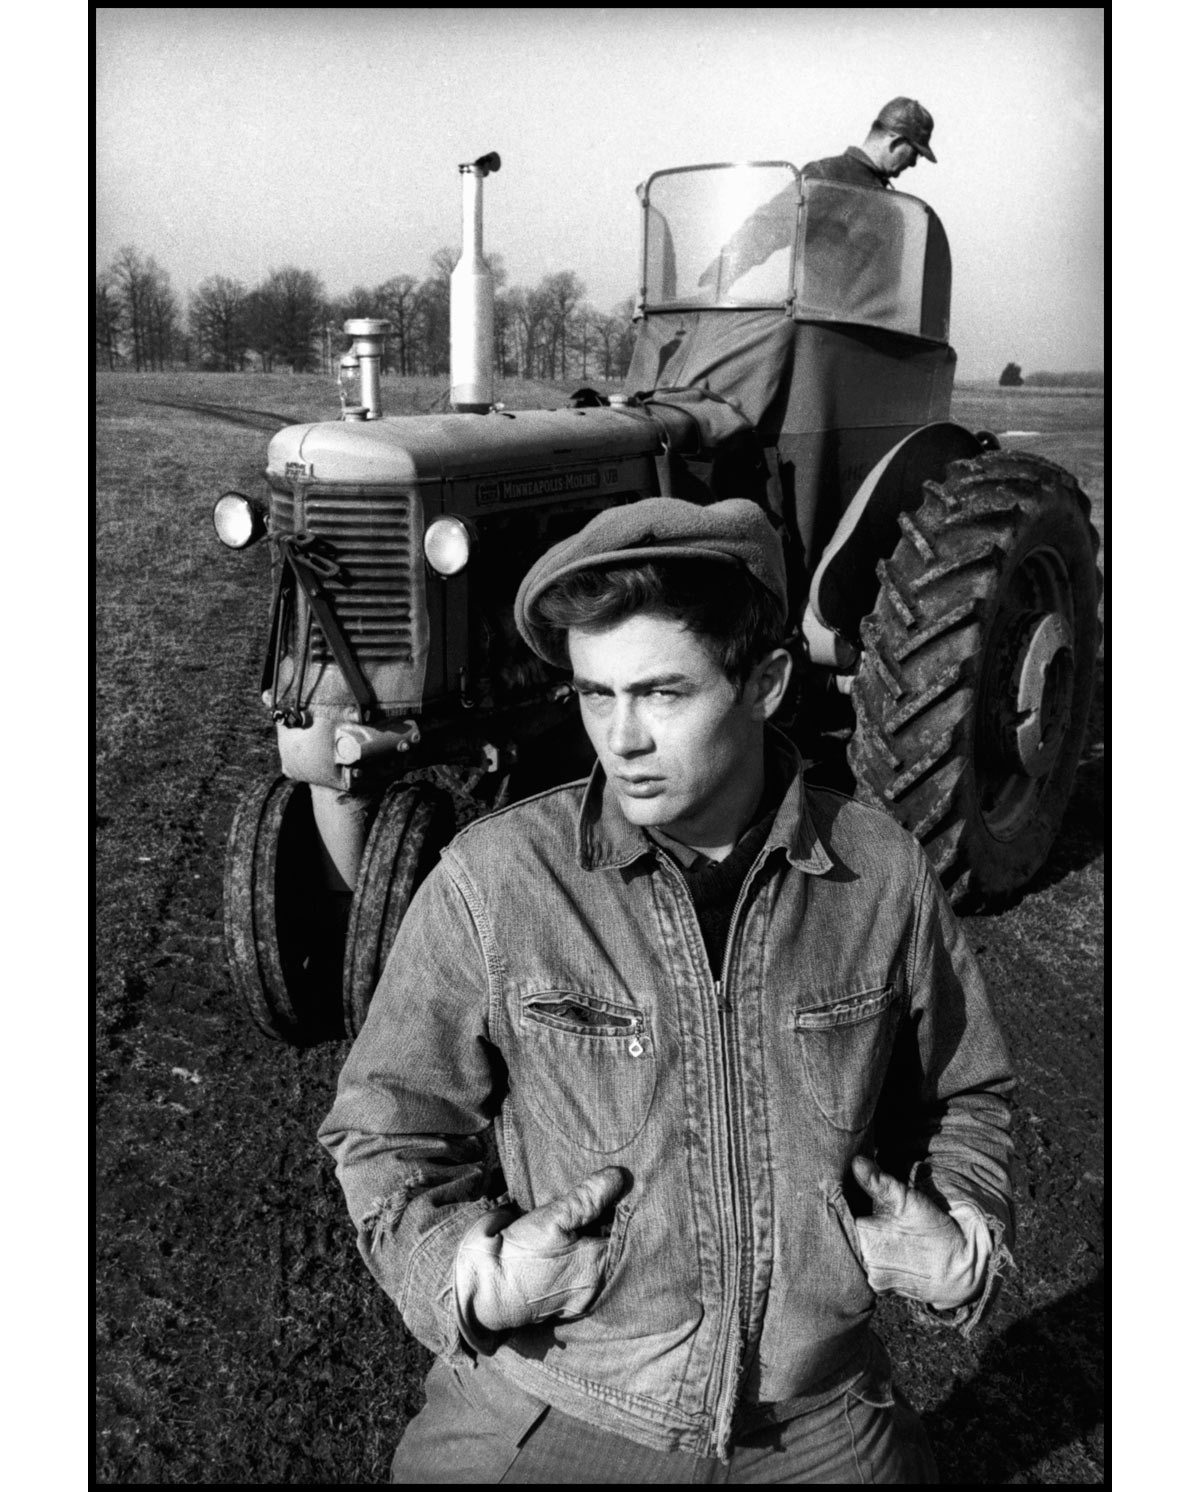 james_dean_anniversaire_18_7821.jpeg_north_1200x_white.jpg